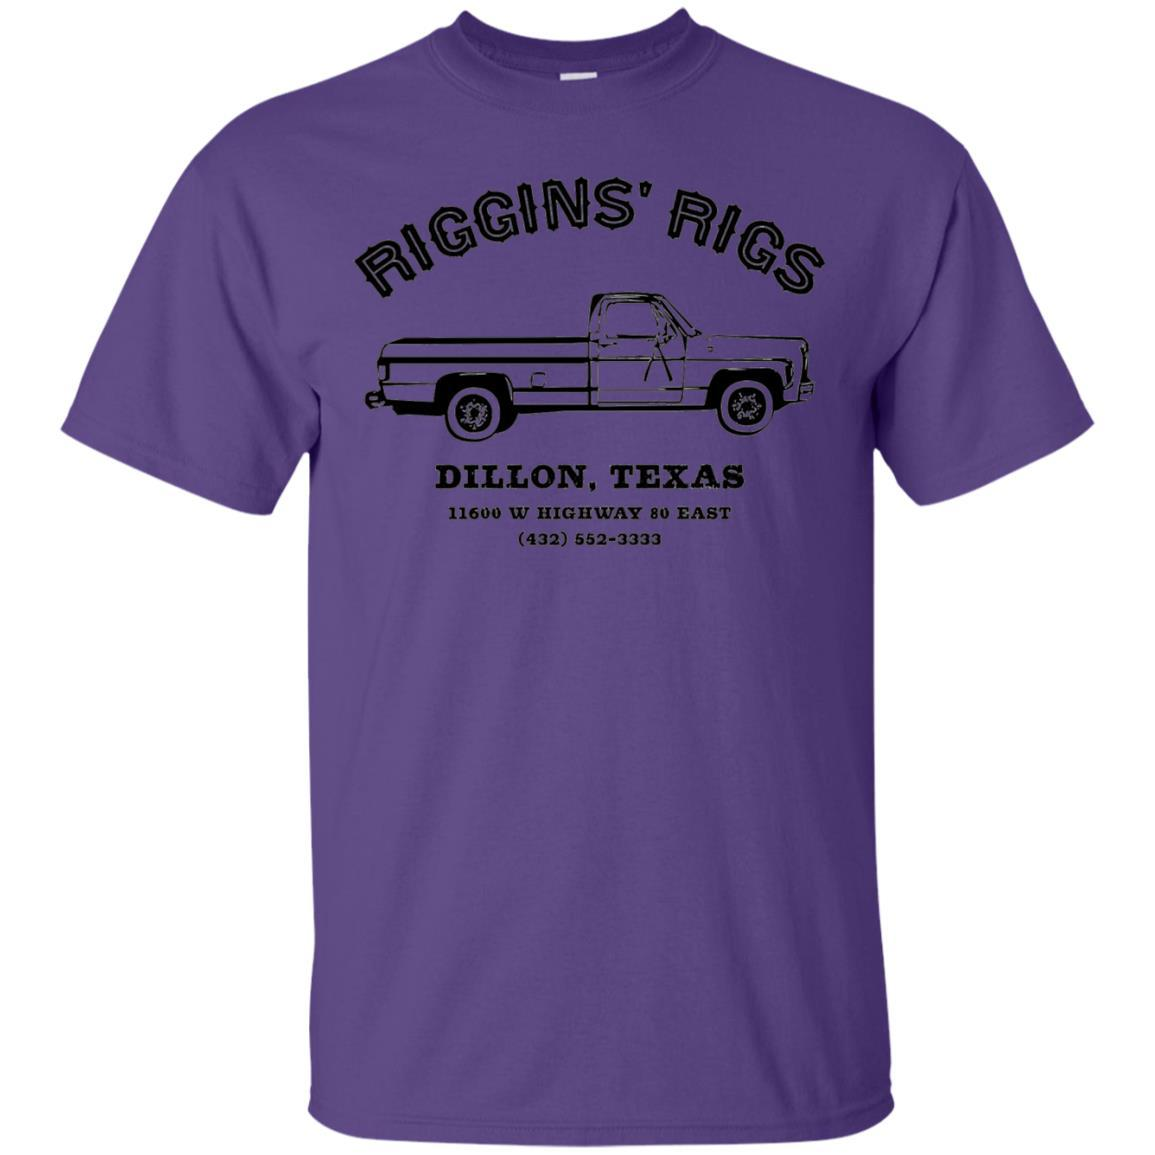 Riggins Rigs Football Player Fan Shirt